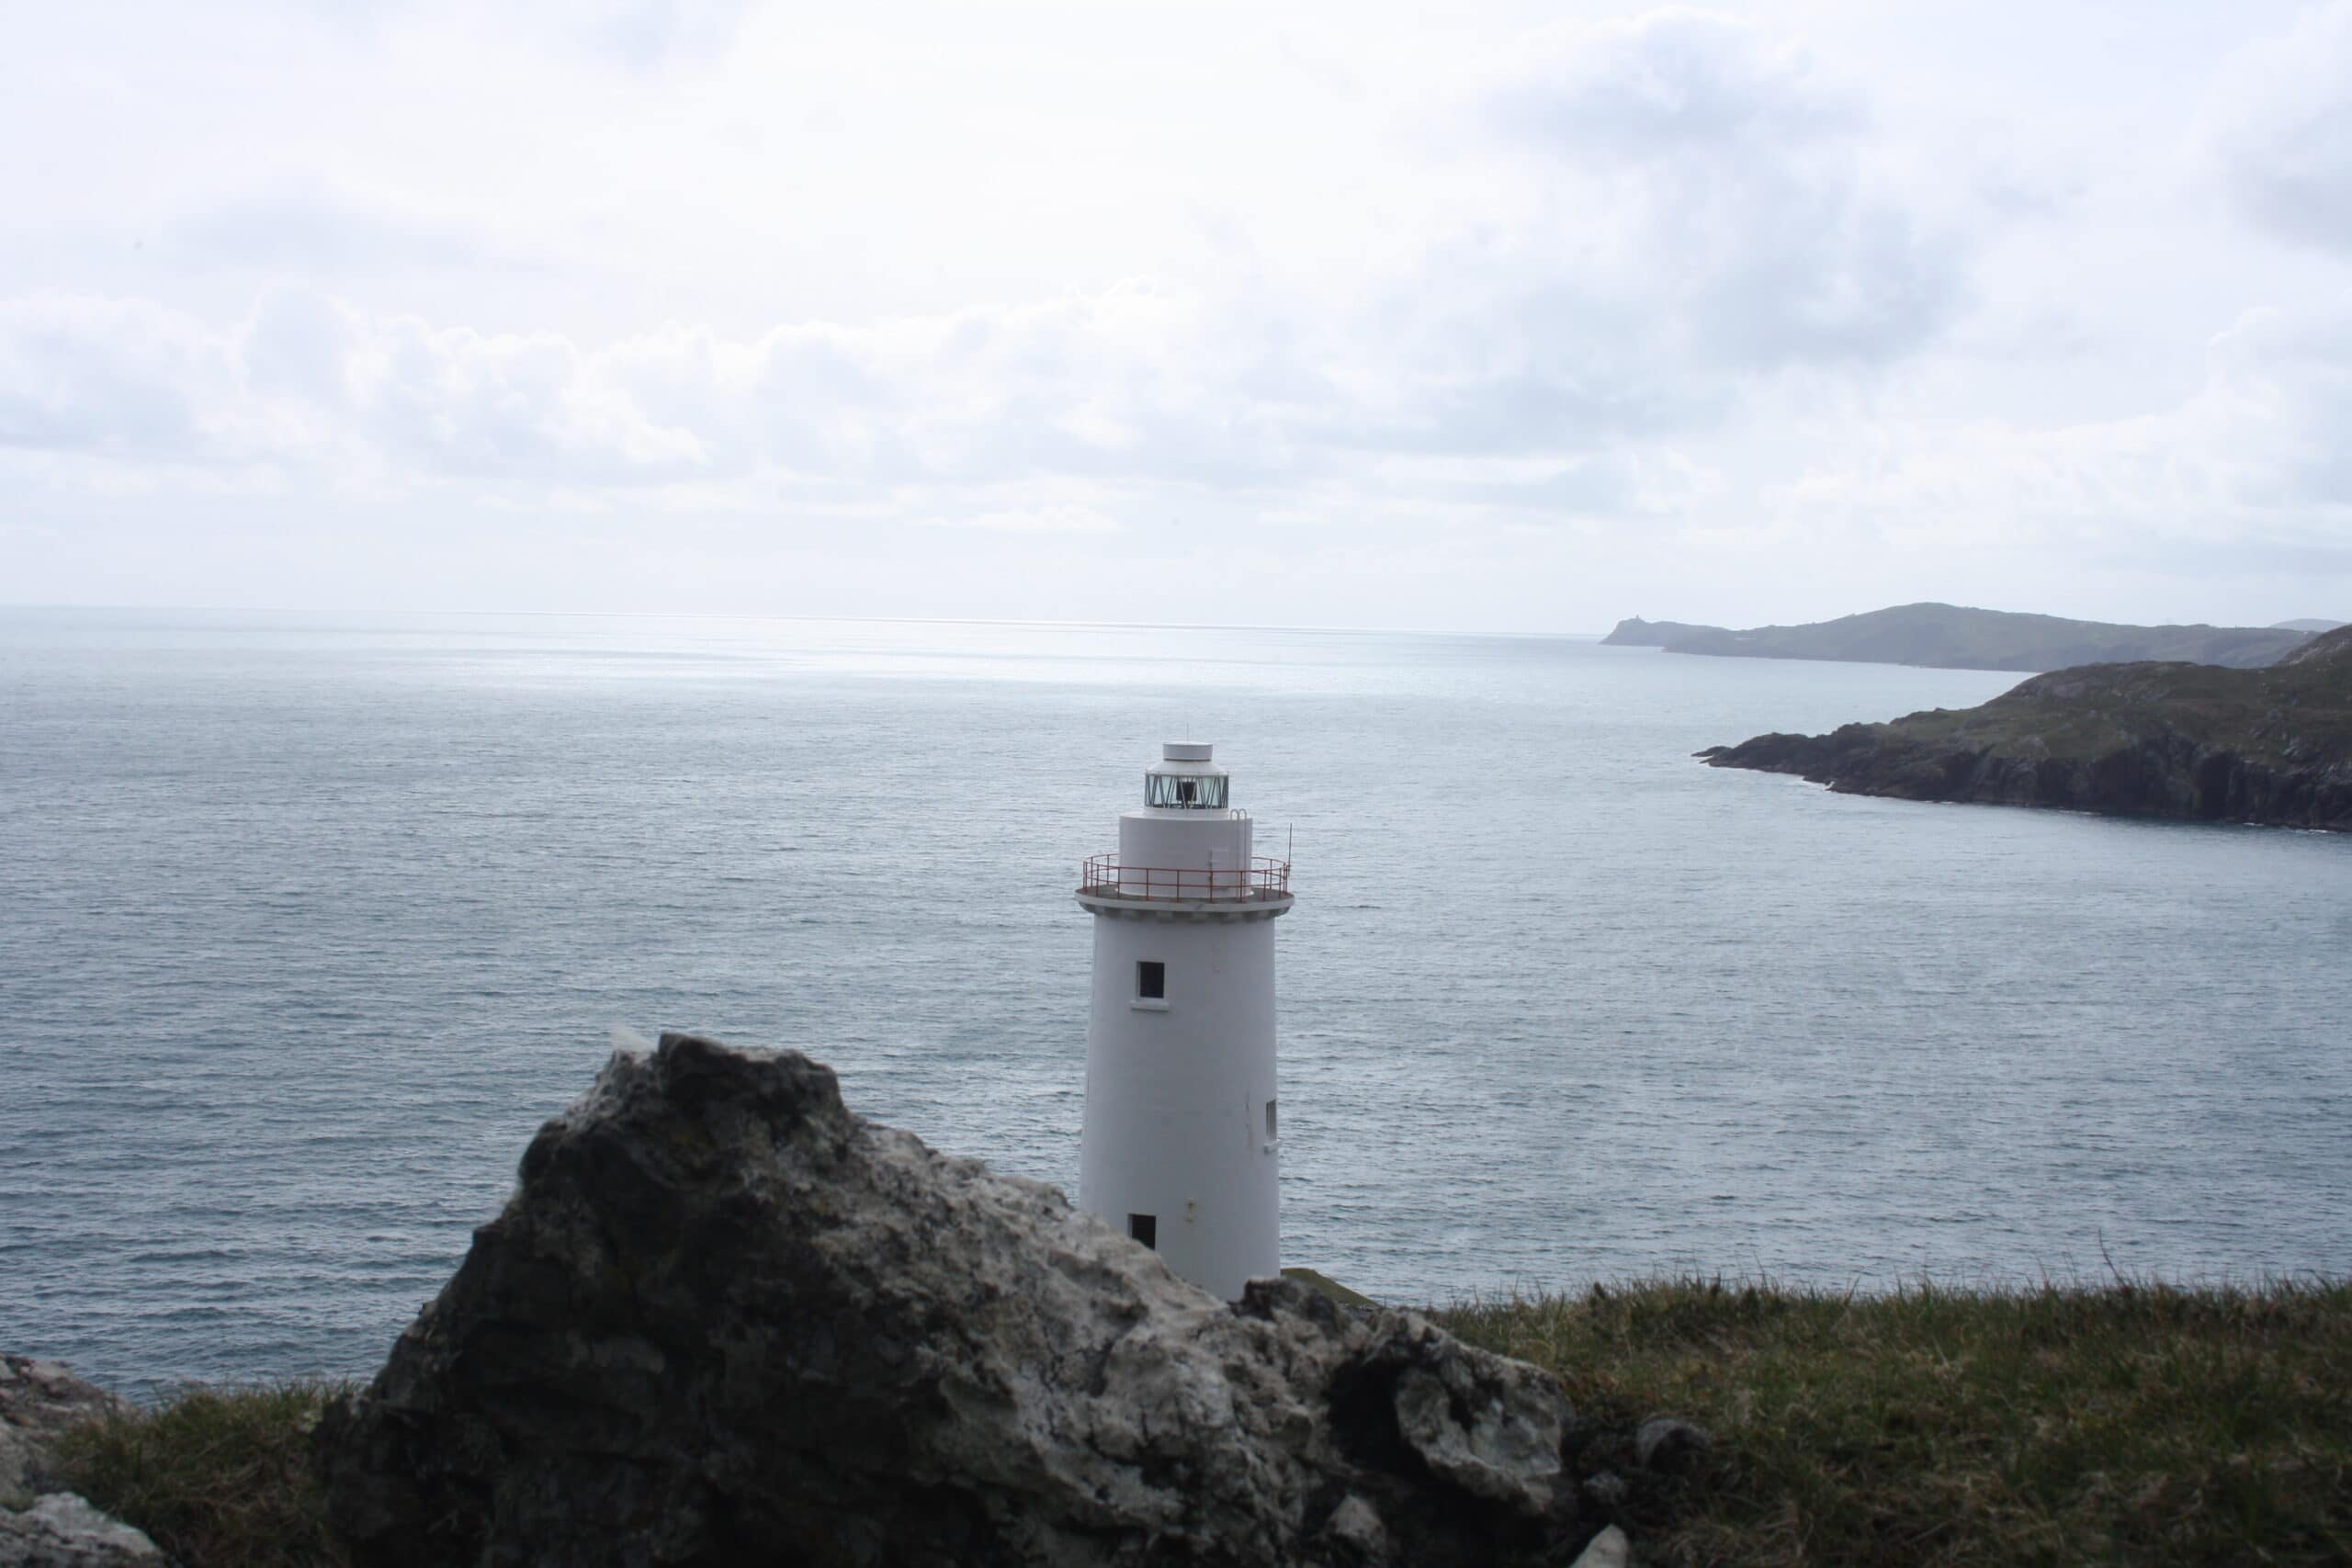 Funding of €176,000 announced to provide cargo service to Bere Island